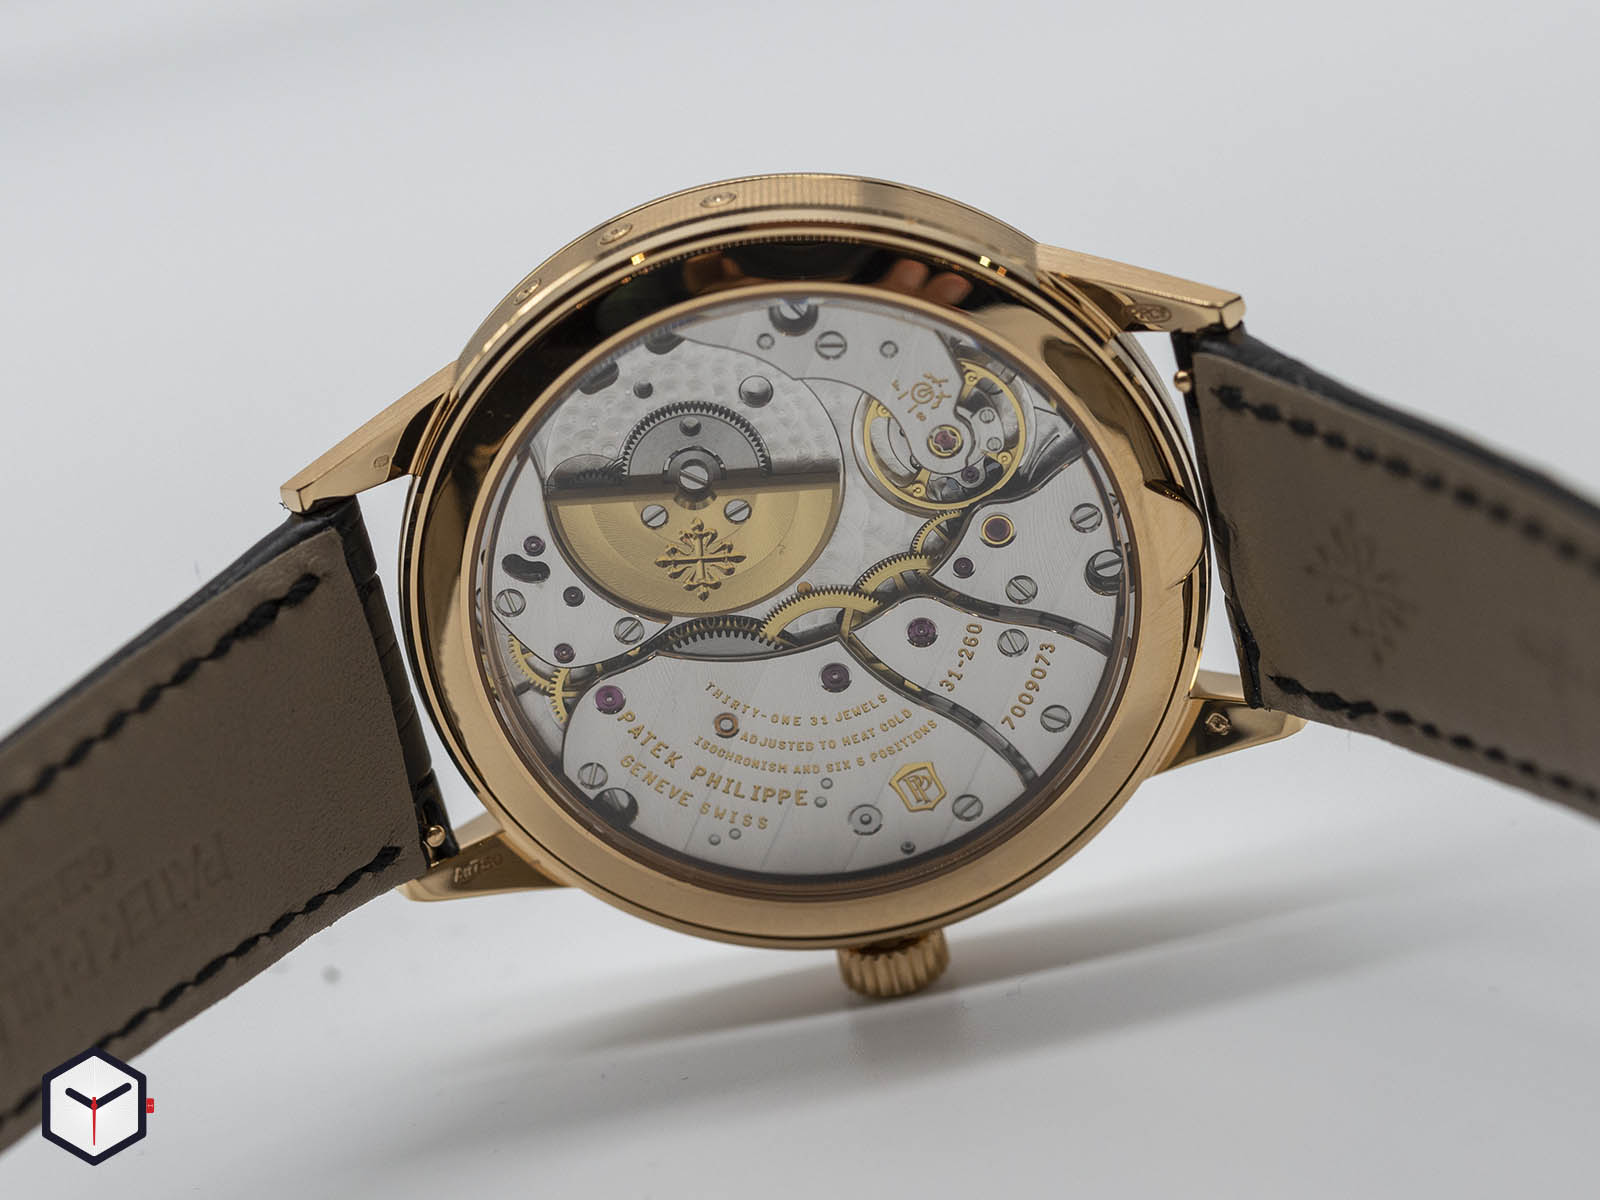 5235-50r-001-patek-philippe-5235-50r-annual-calendar-regulator-5.jpg